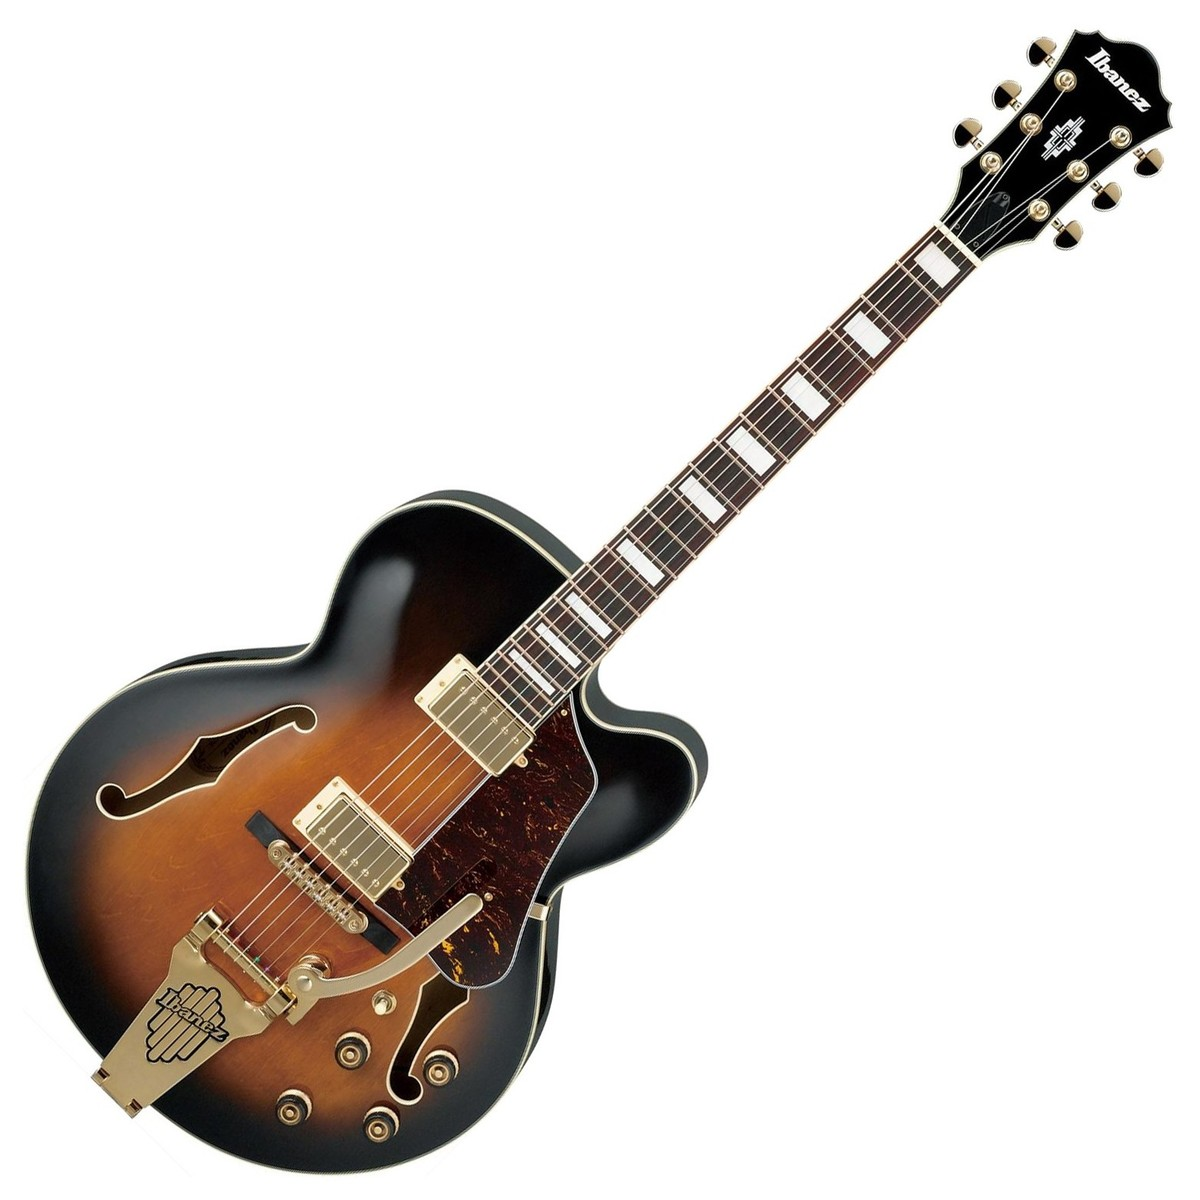 ibanez af75tdg artcore vintage sunburst at gear4music. Black Bedroom Furniture Sets. Home Design Ideas